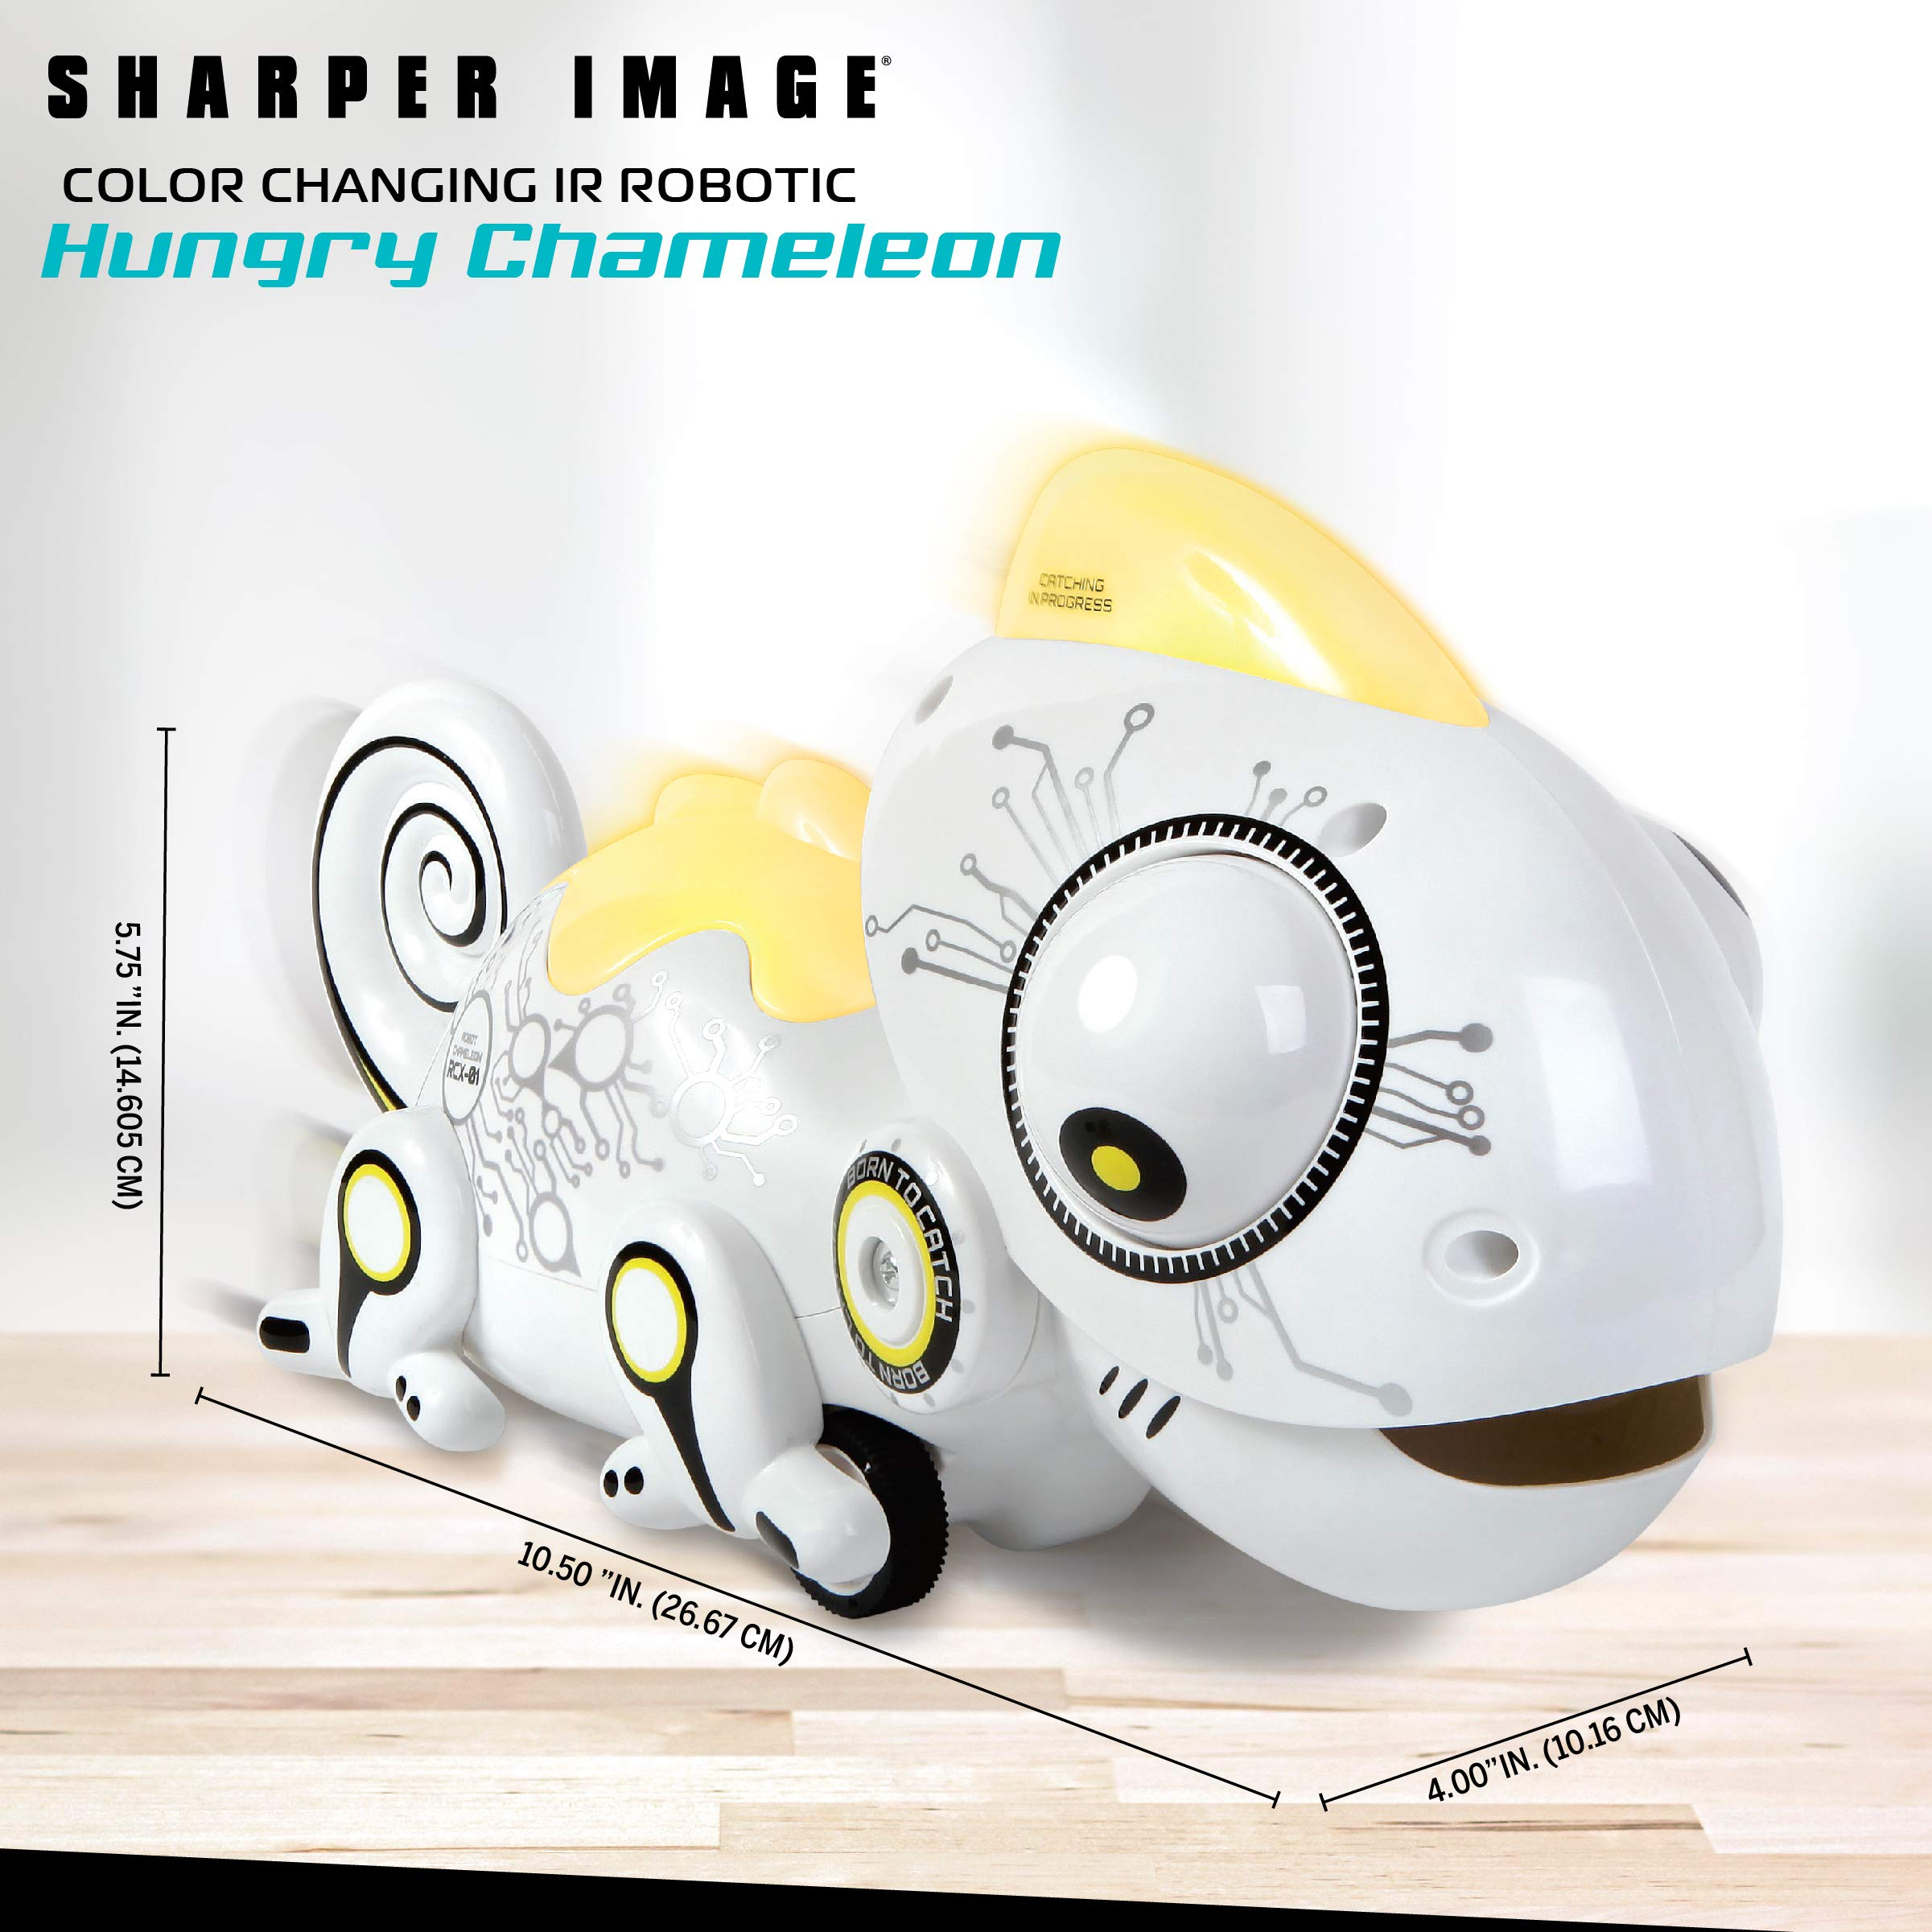 Sharper Image Color Changing RC Robotic Chameleon Toy with Multi Colored LED Lights and Bug Catching Action; Multi-Directional Remote Control & Extendable Tongue with Animated Eyes and Tail by Sharper Image (Image #7)